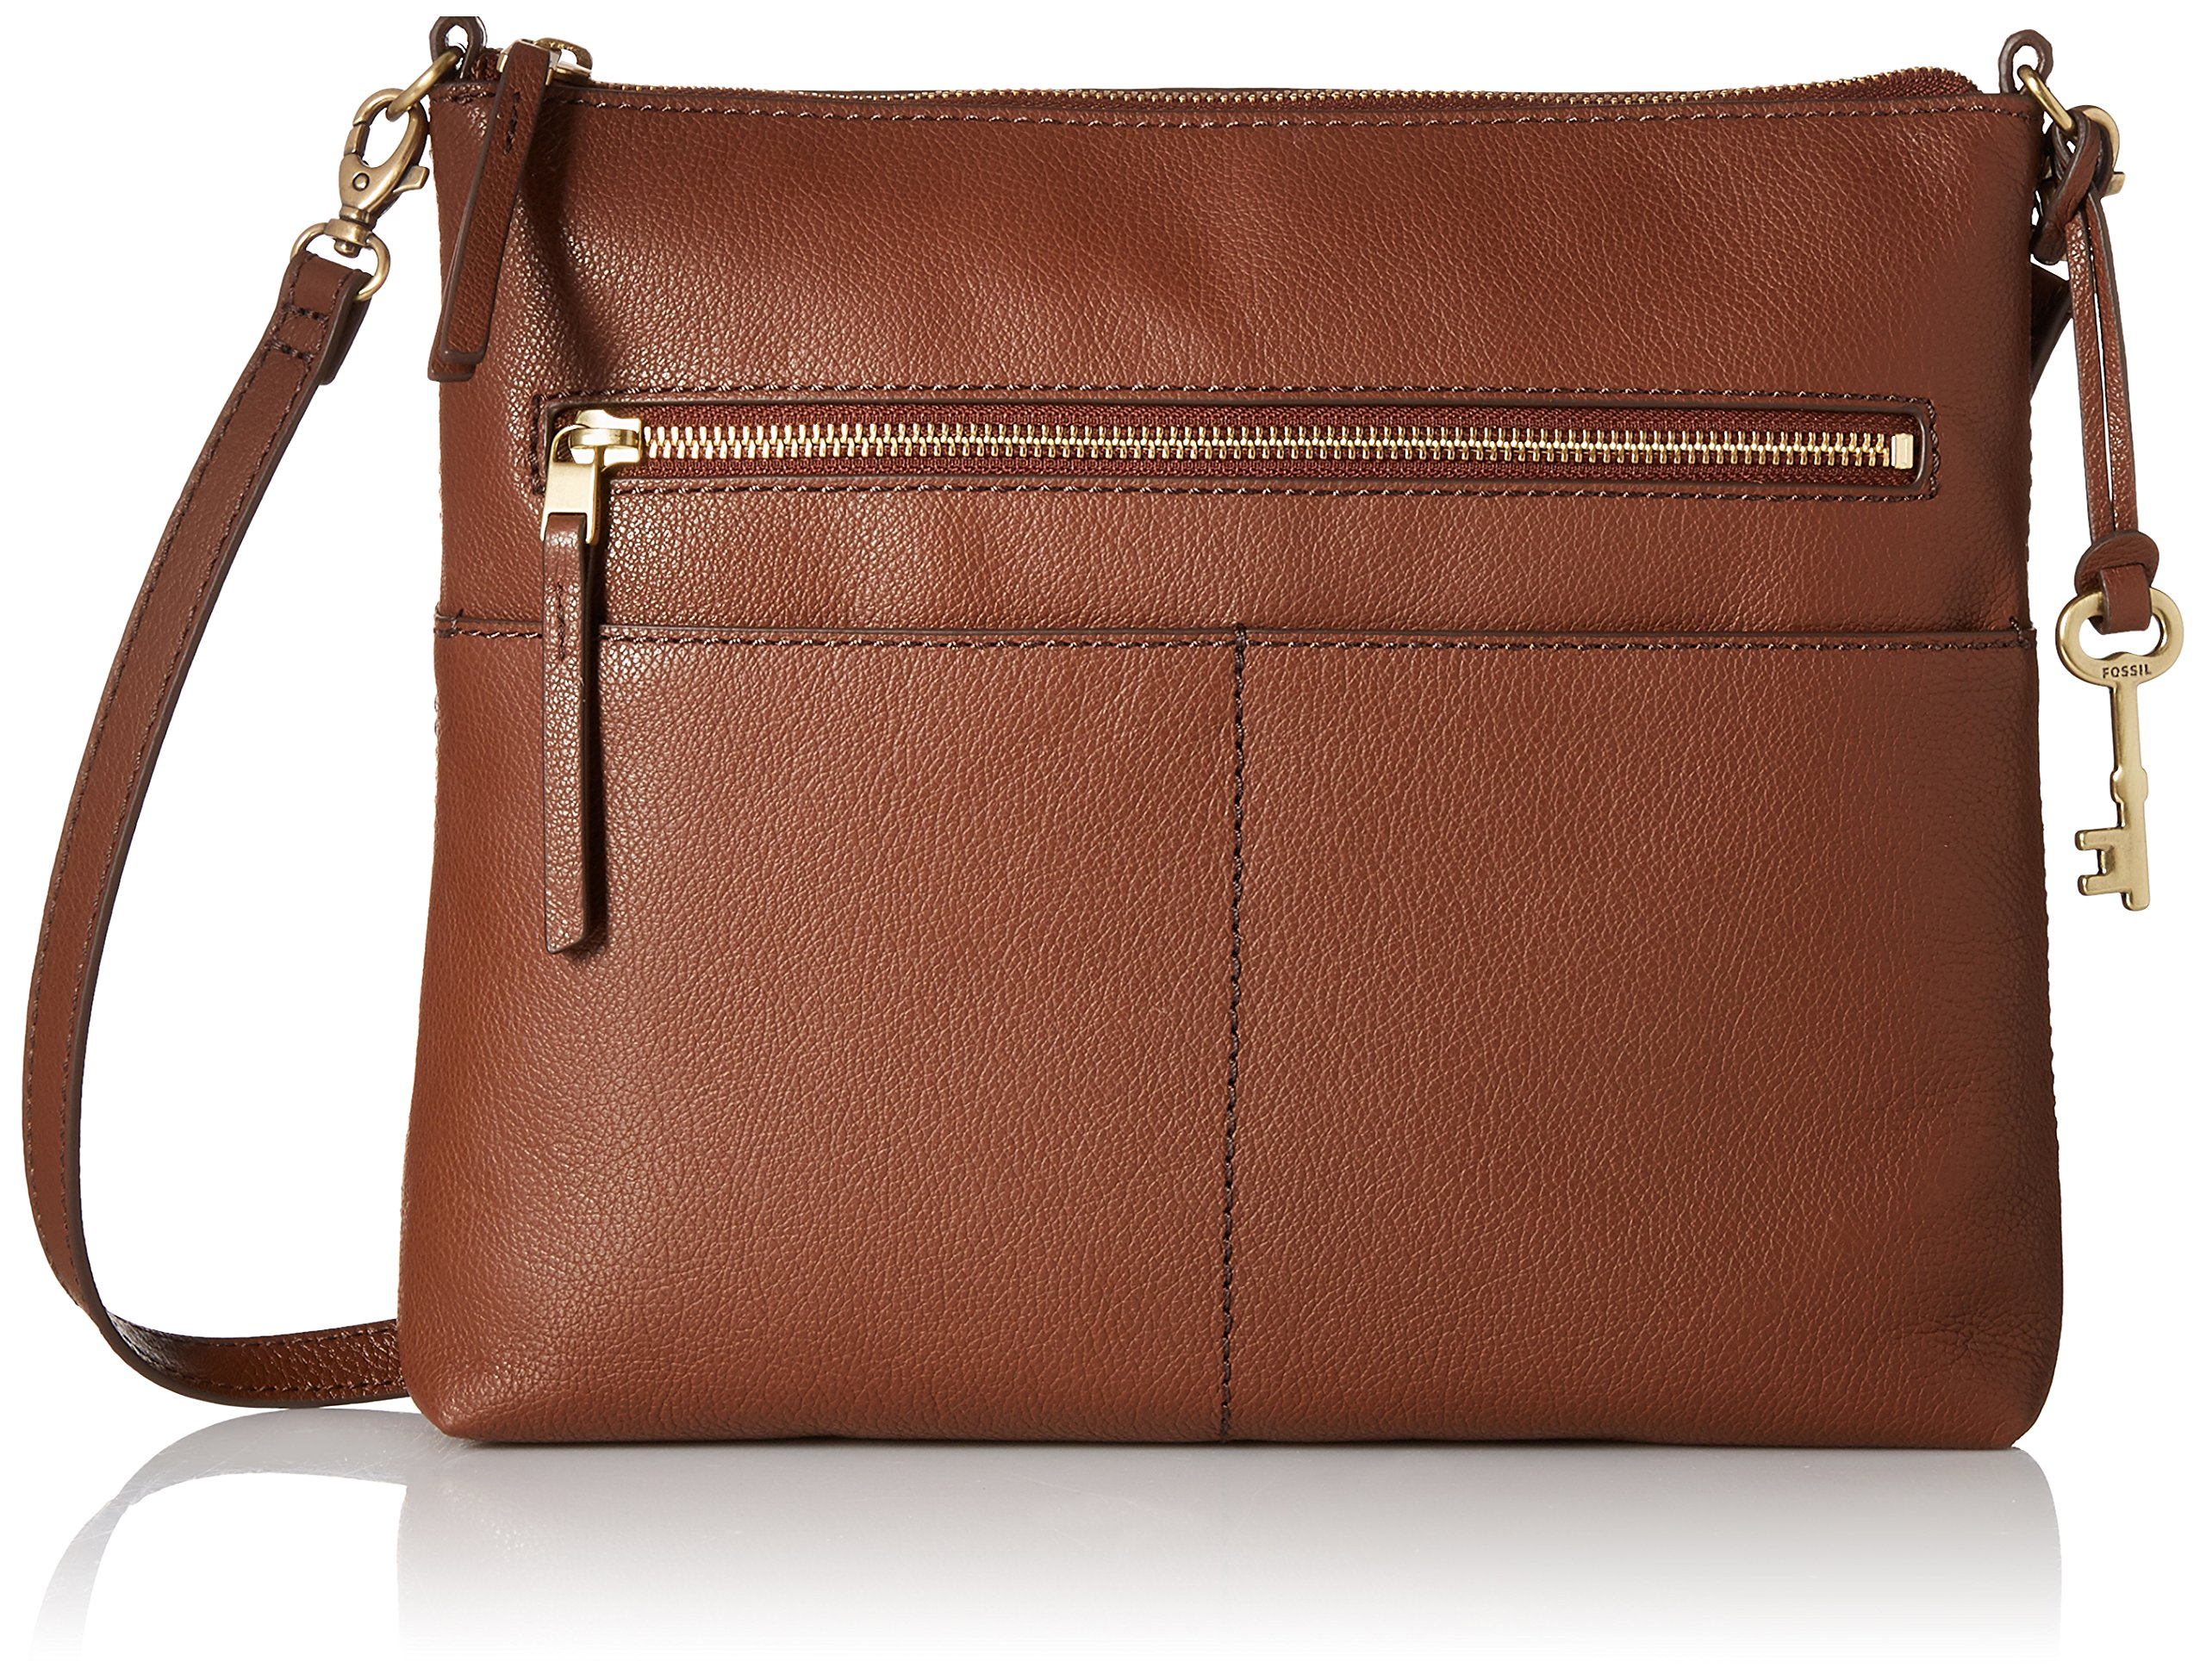 Fossil Fiona Large Crossbody, medium brown, One Size